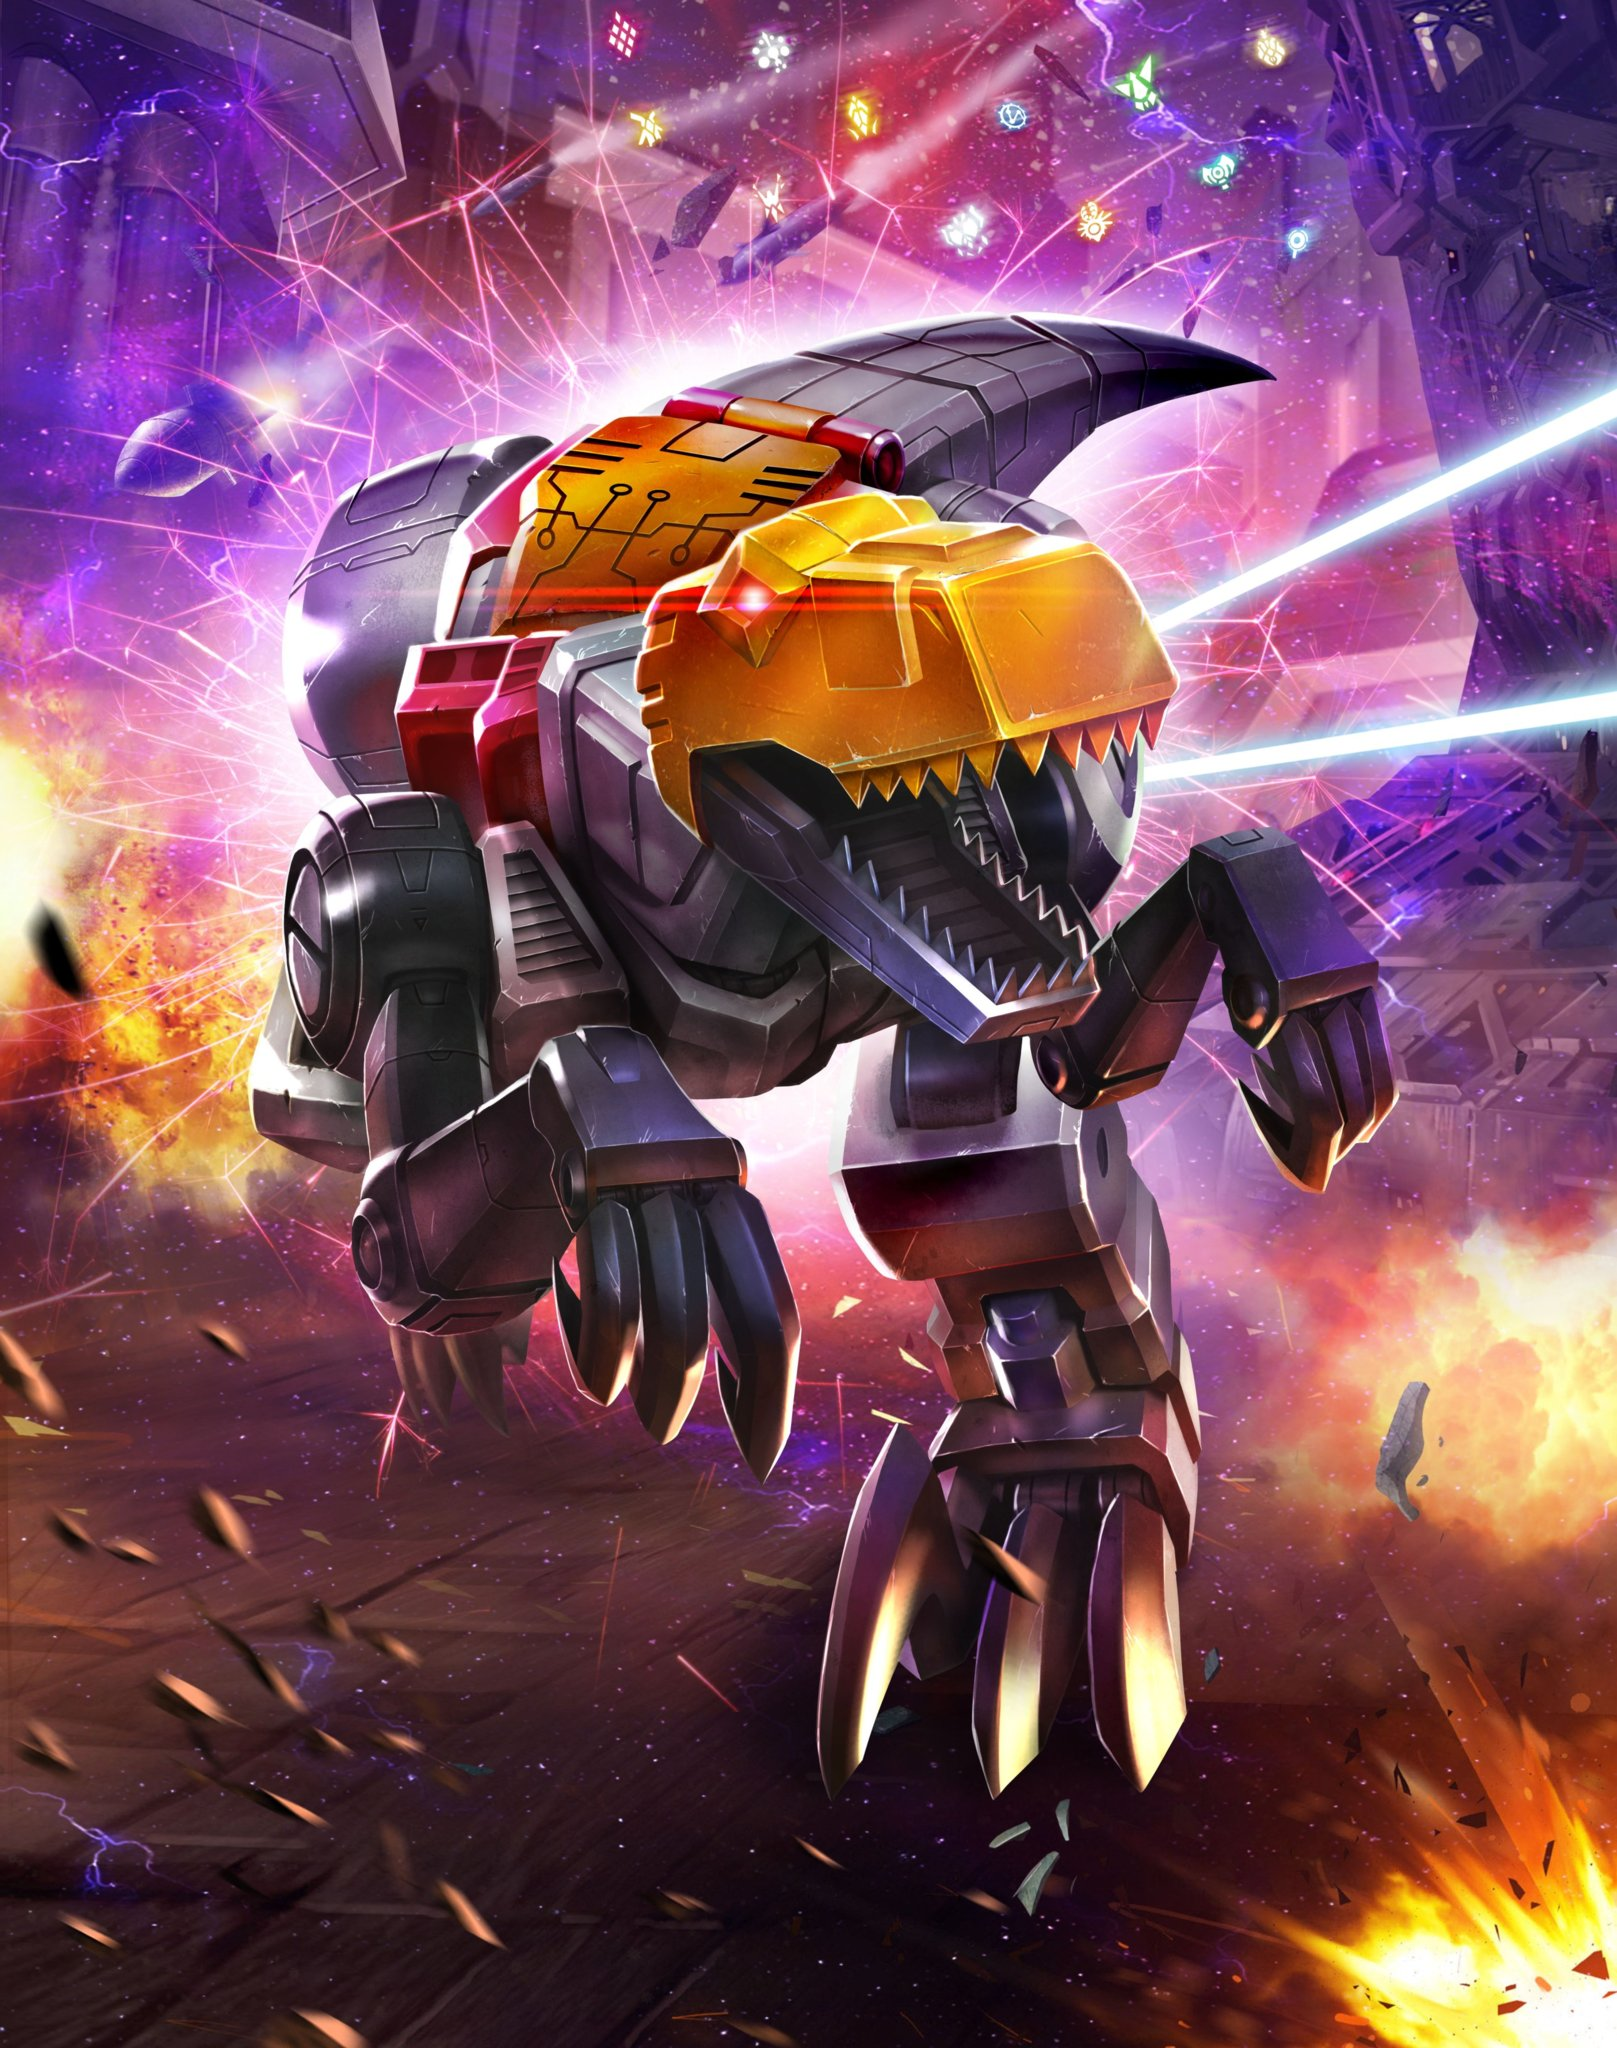 More Transformers Power Of The Primes Official Images